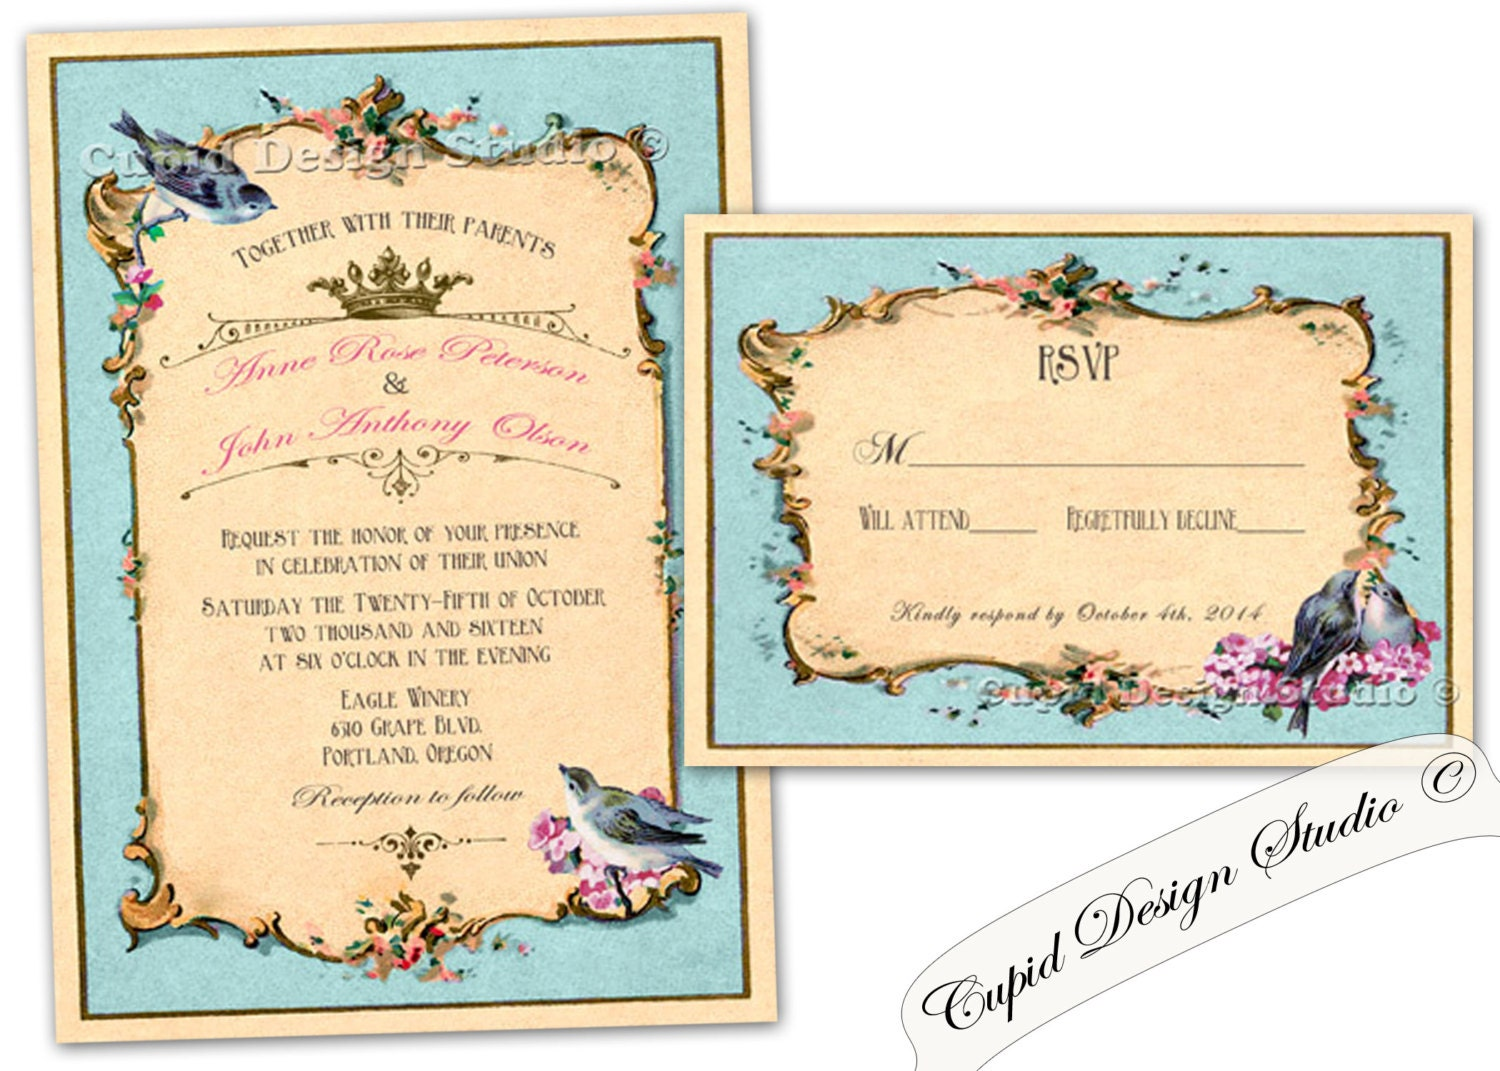 Bird Wedding Invitation: Romantic Birds Wedding Invitation. Birds Wedding Invitations